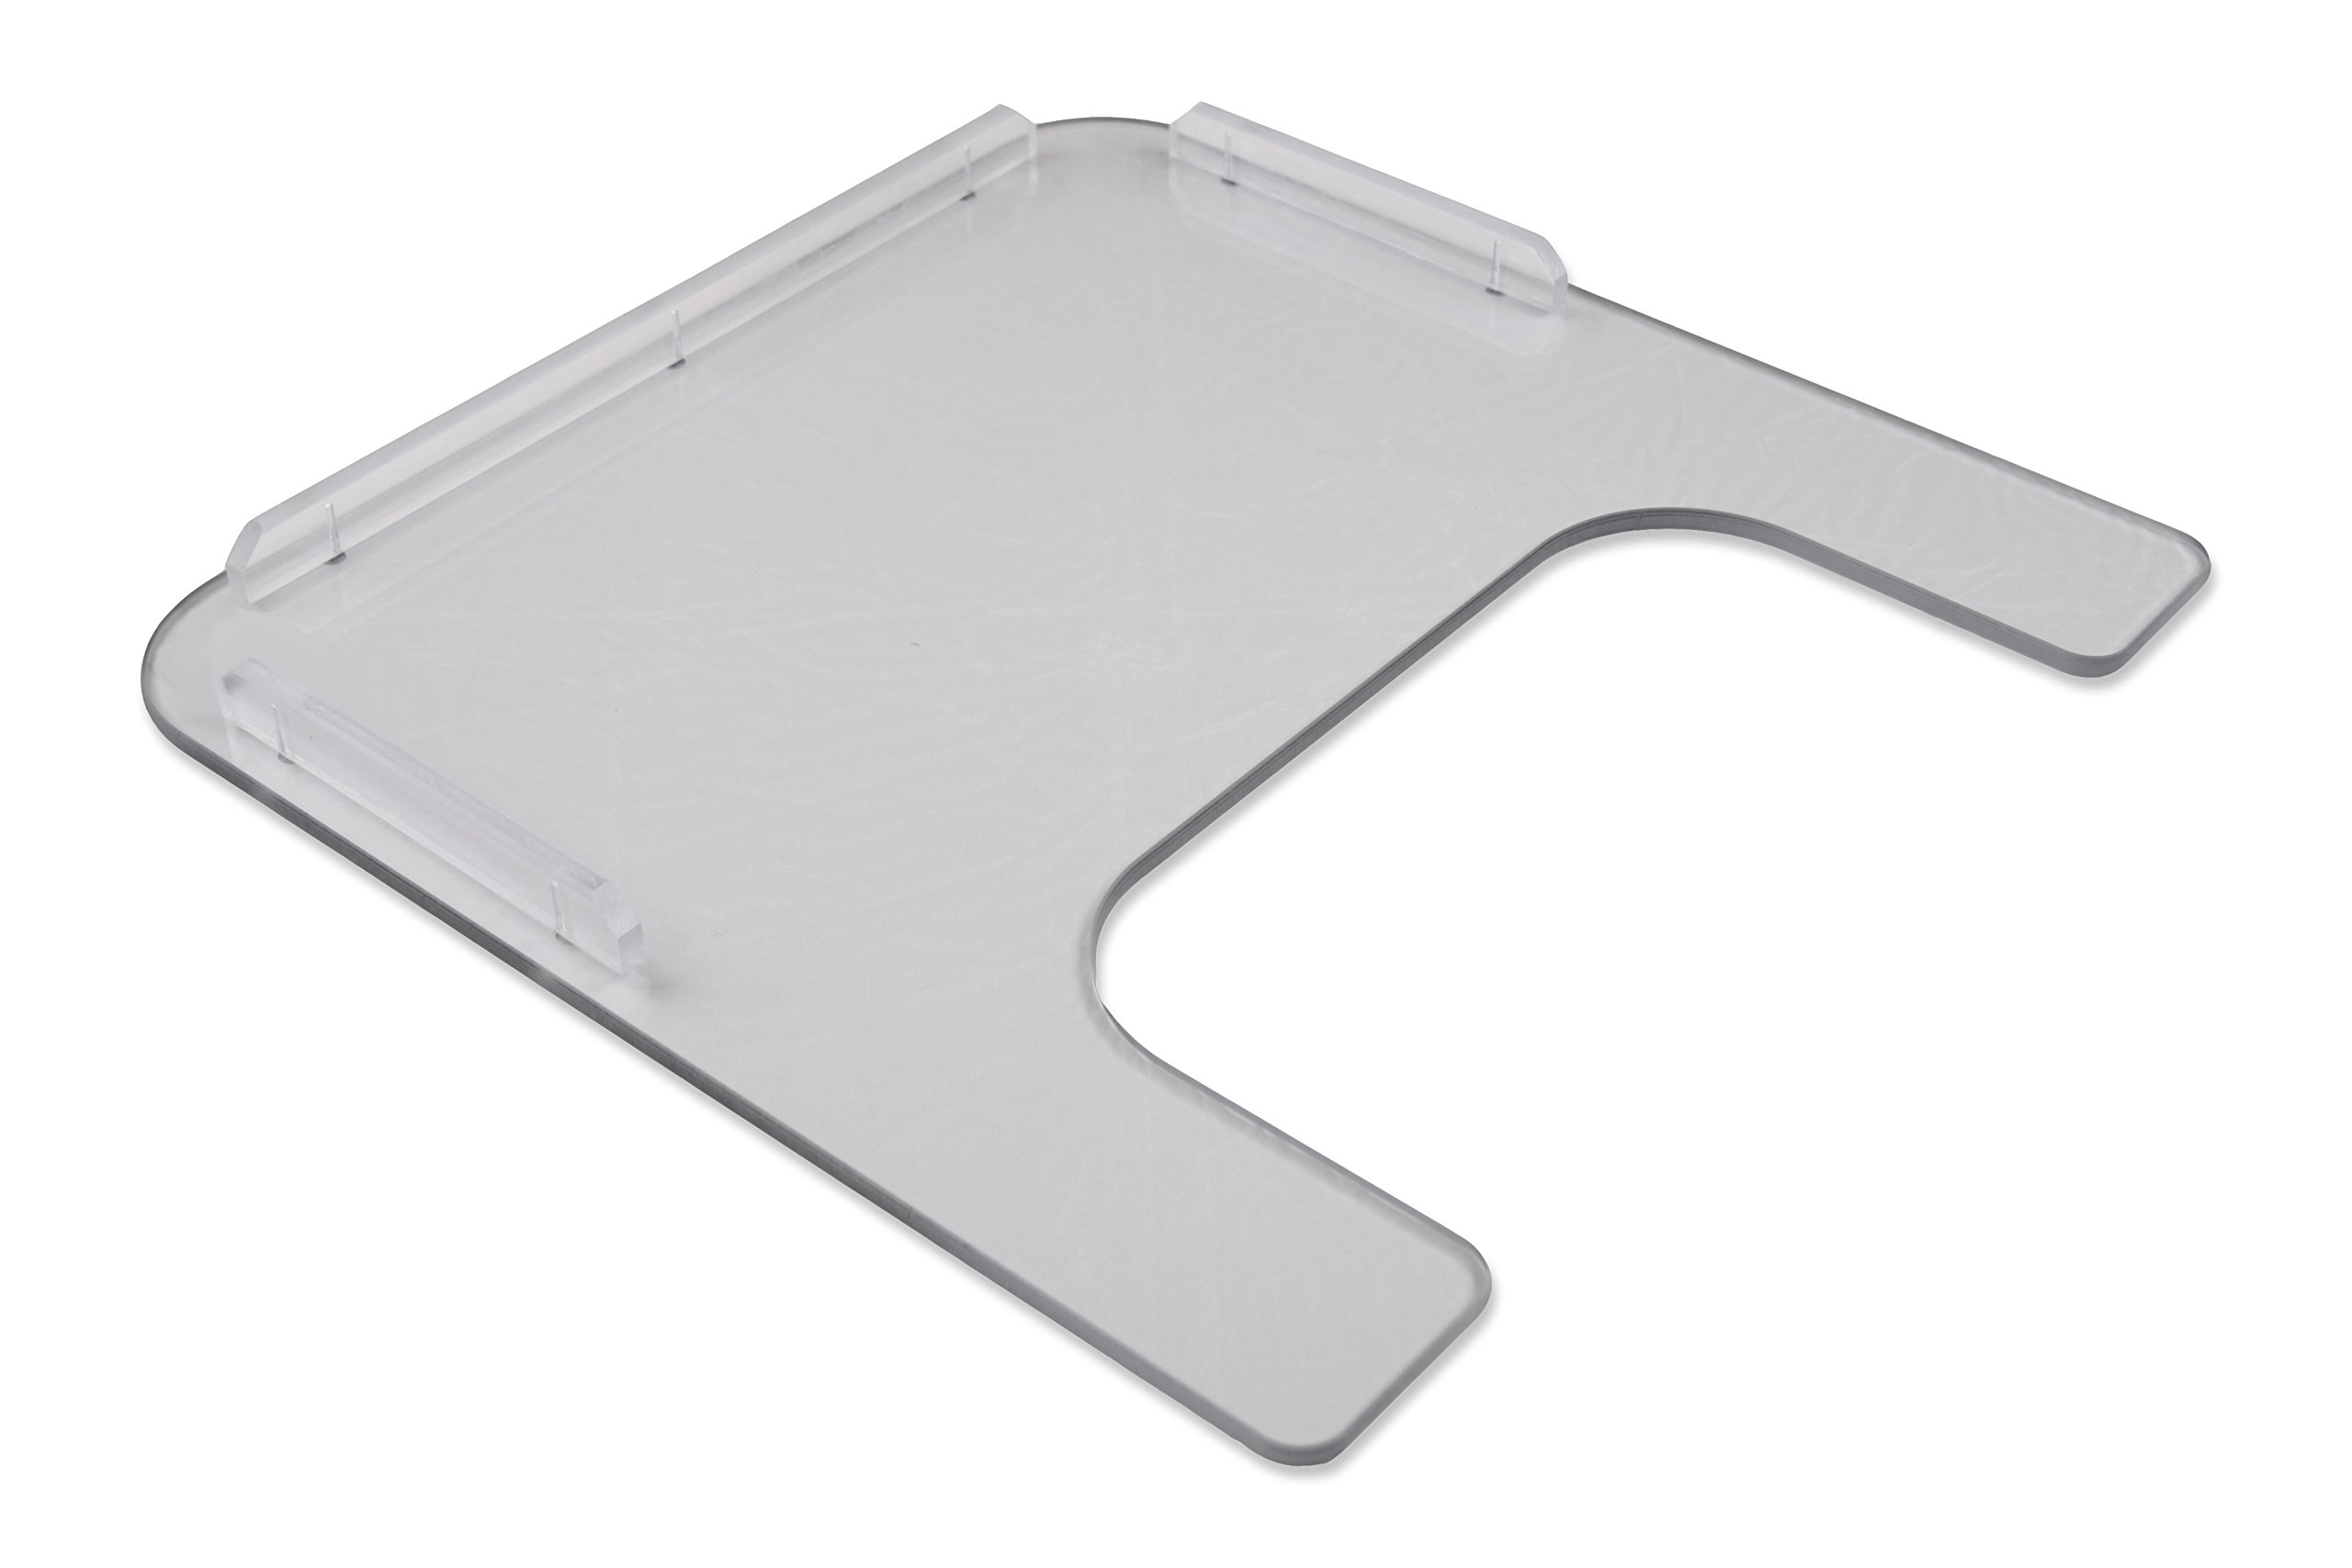 "Rehabilitation Advantage 3/8"" Polycarbonate Wheelchair Tray (Adult) with Poly Rim and Included Velcro Straps"